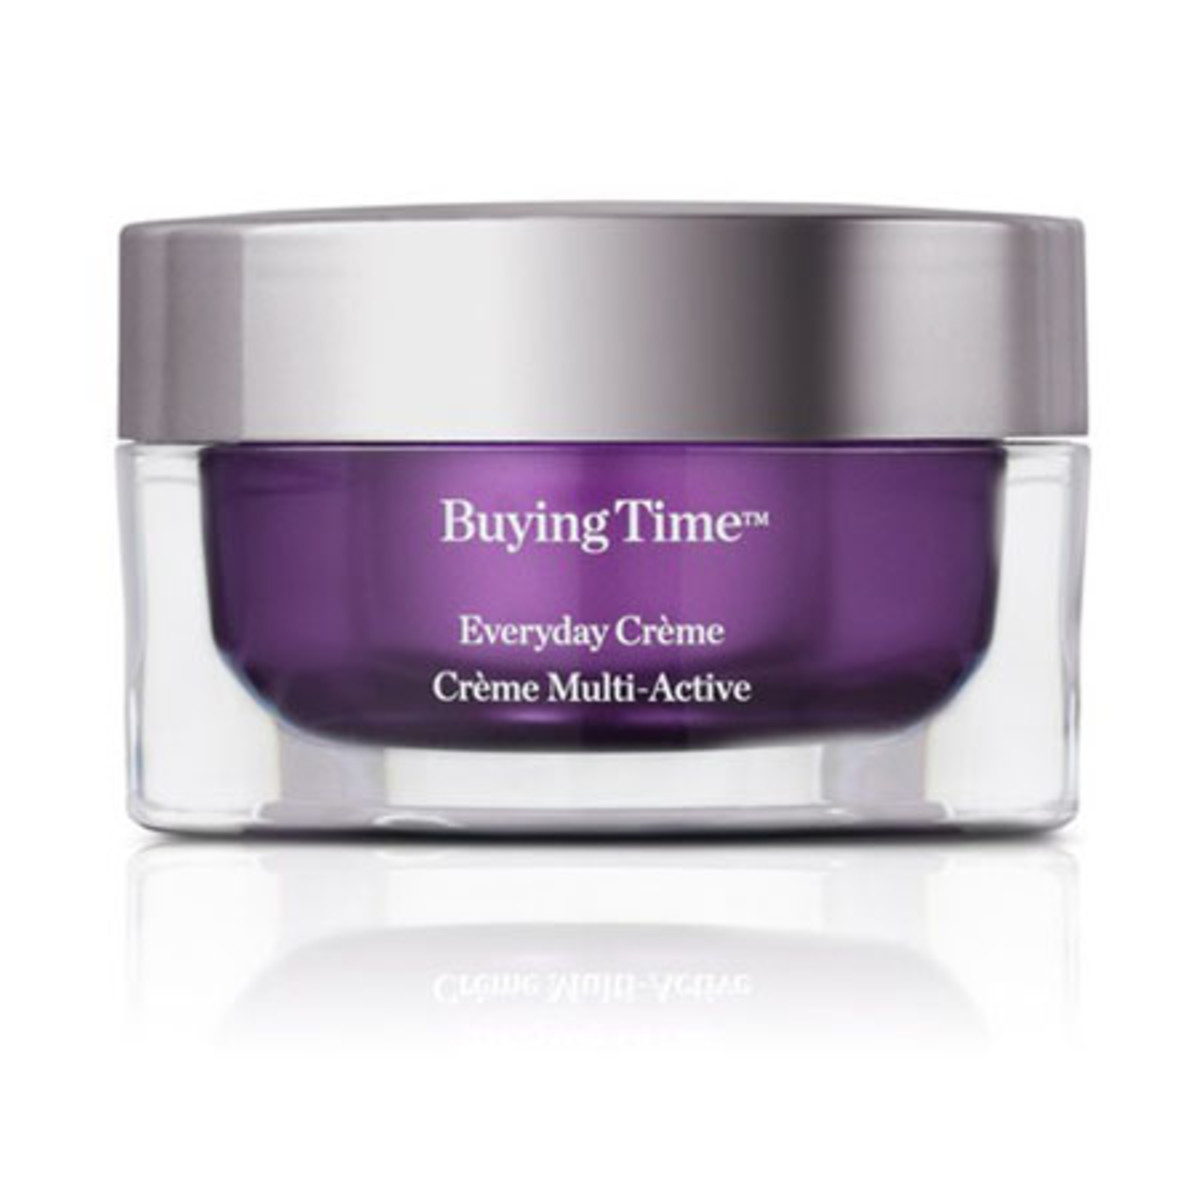 Vbeaute Buying Time Everyday Creme